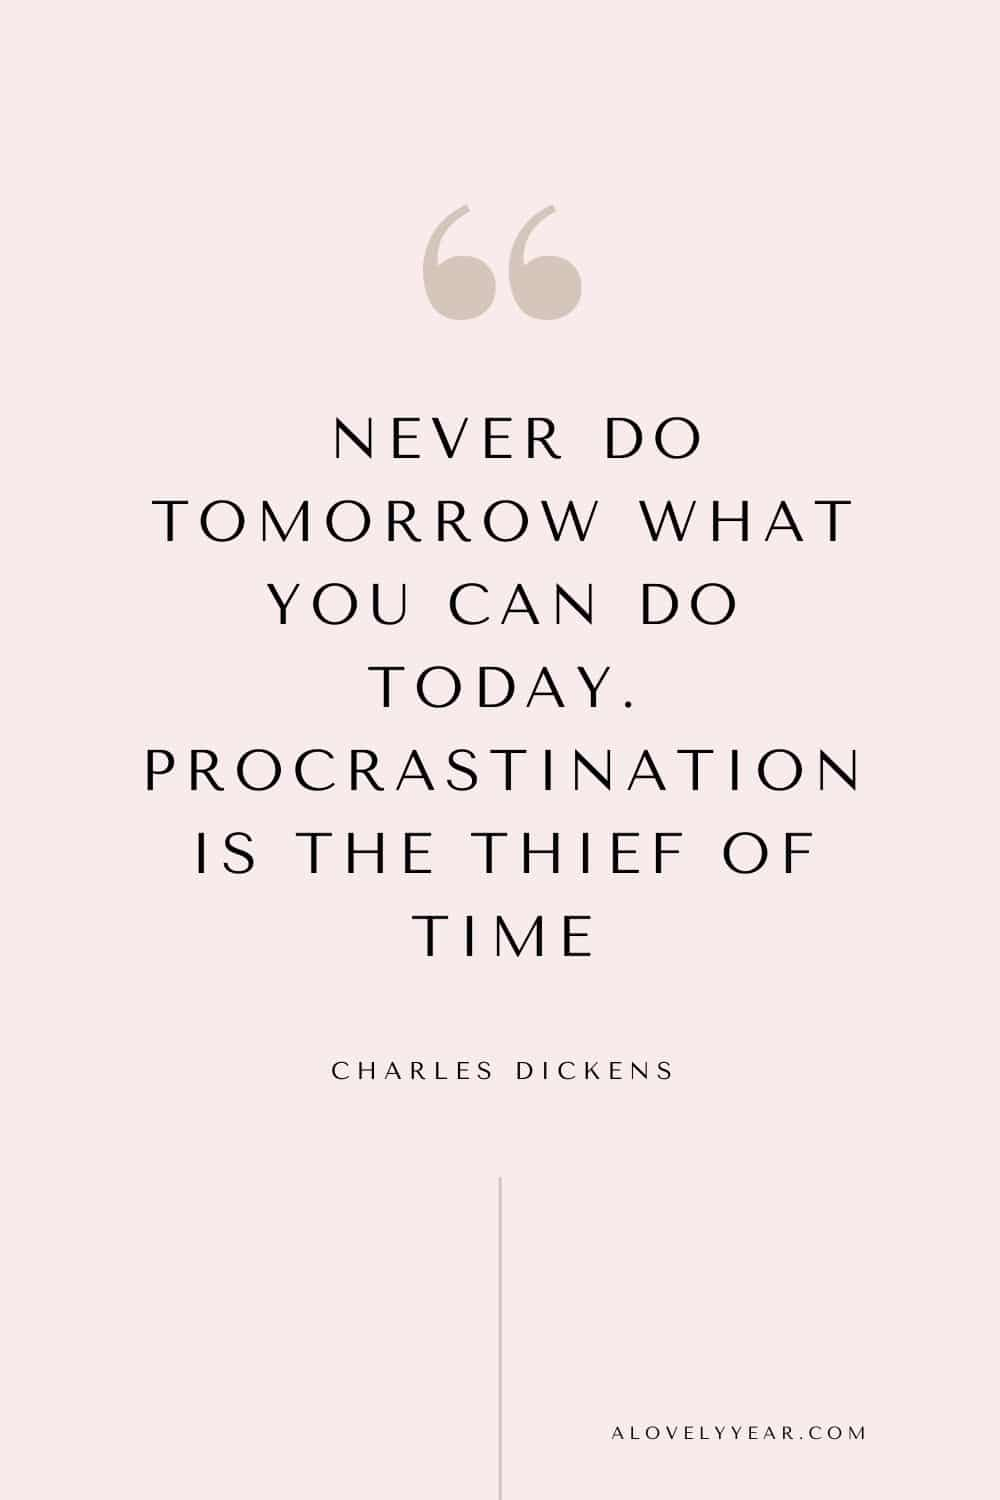 Get things done quote - Never do tomorrow what you can do today. Procrastination is the thief of time. – Charles Dickens